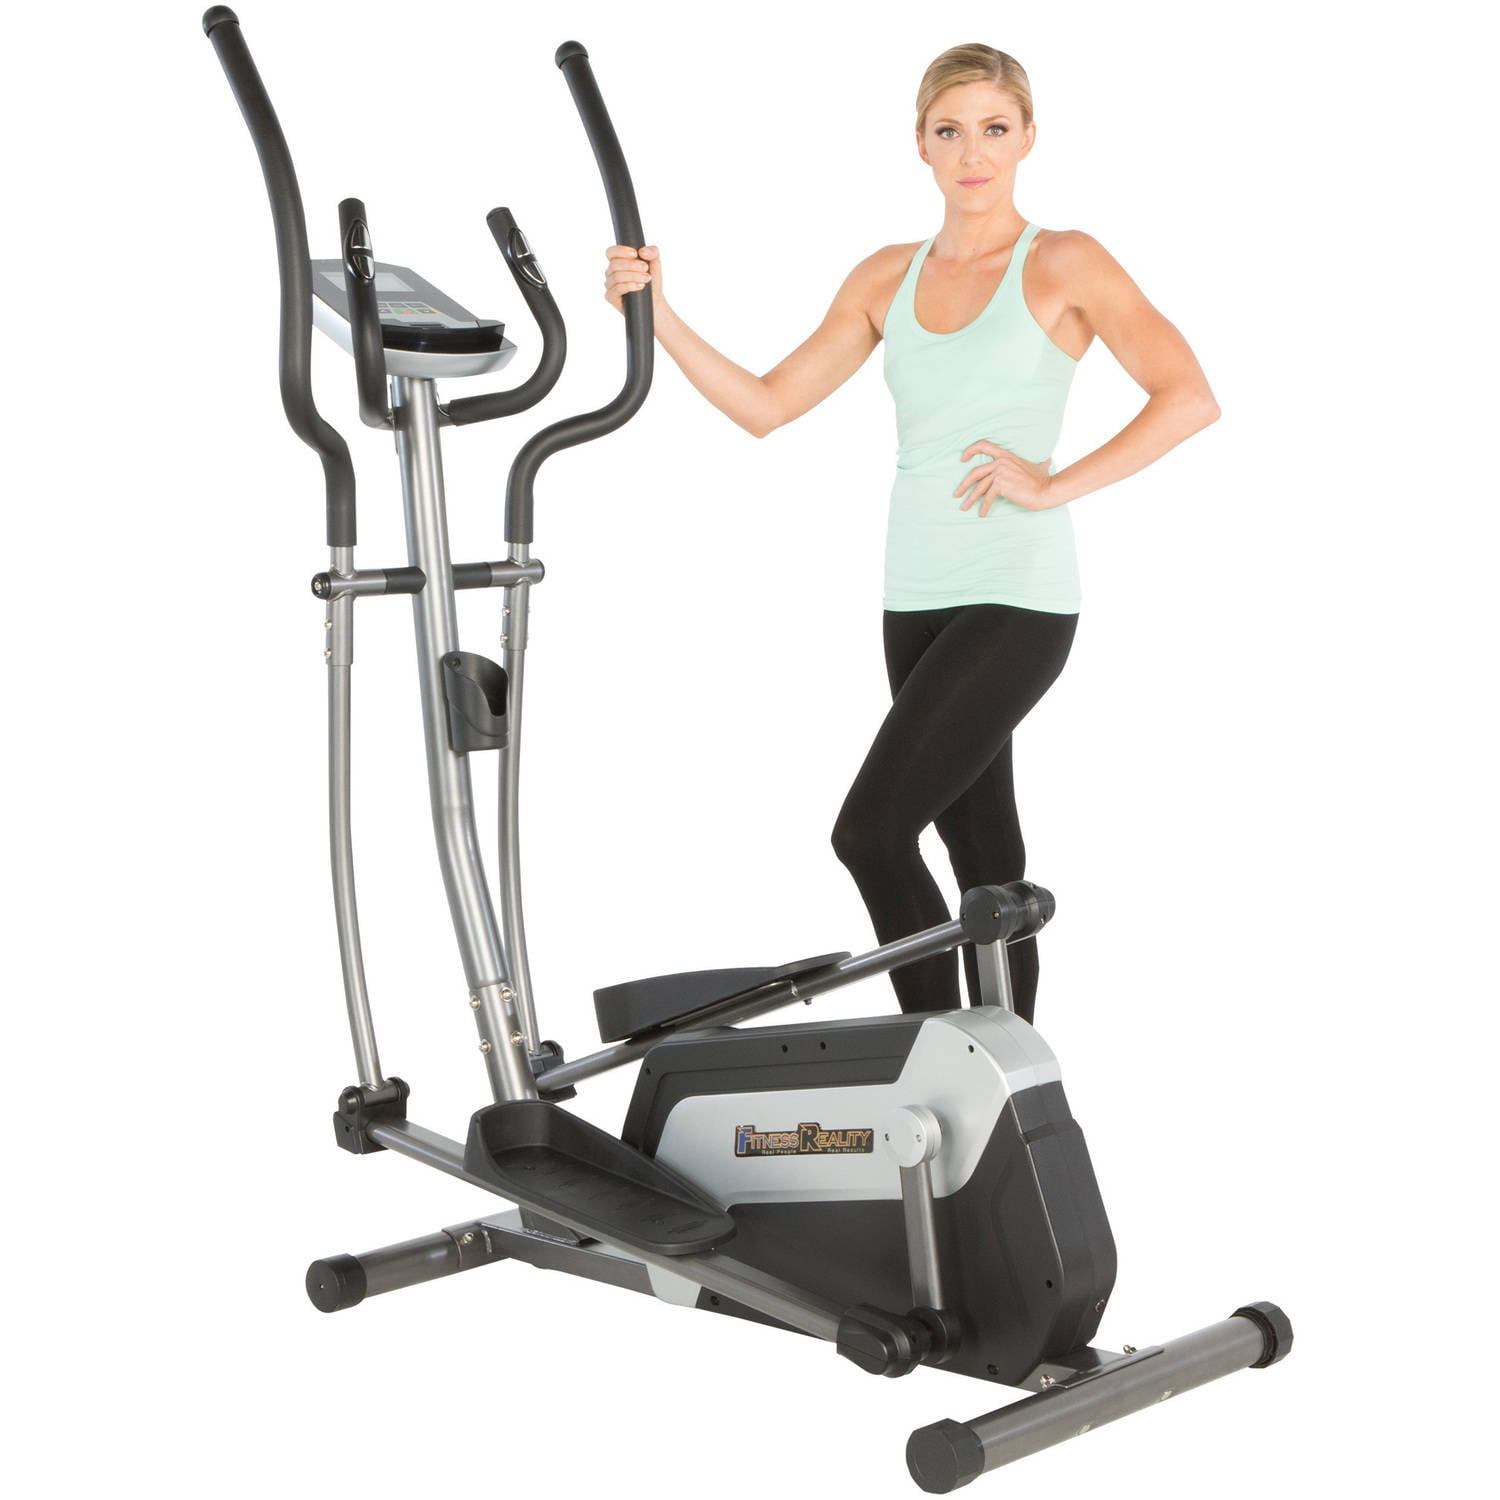 FITNESS REALITY E5500XL Magnetic Elliptical Trainer with Target Workout Computer Programs by Paradigm Health & Wellness